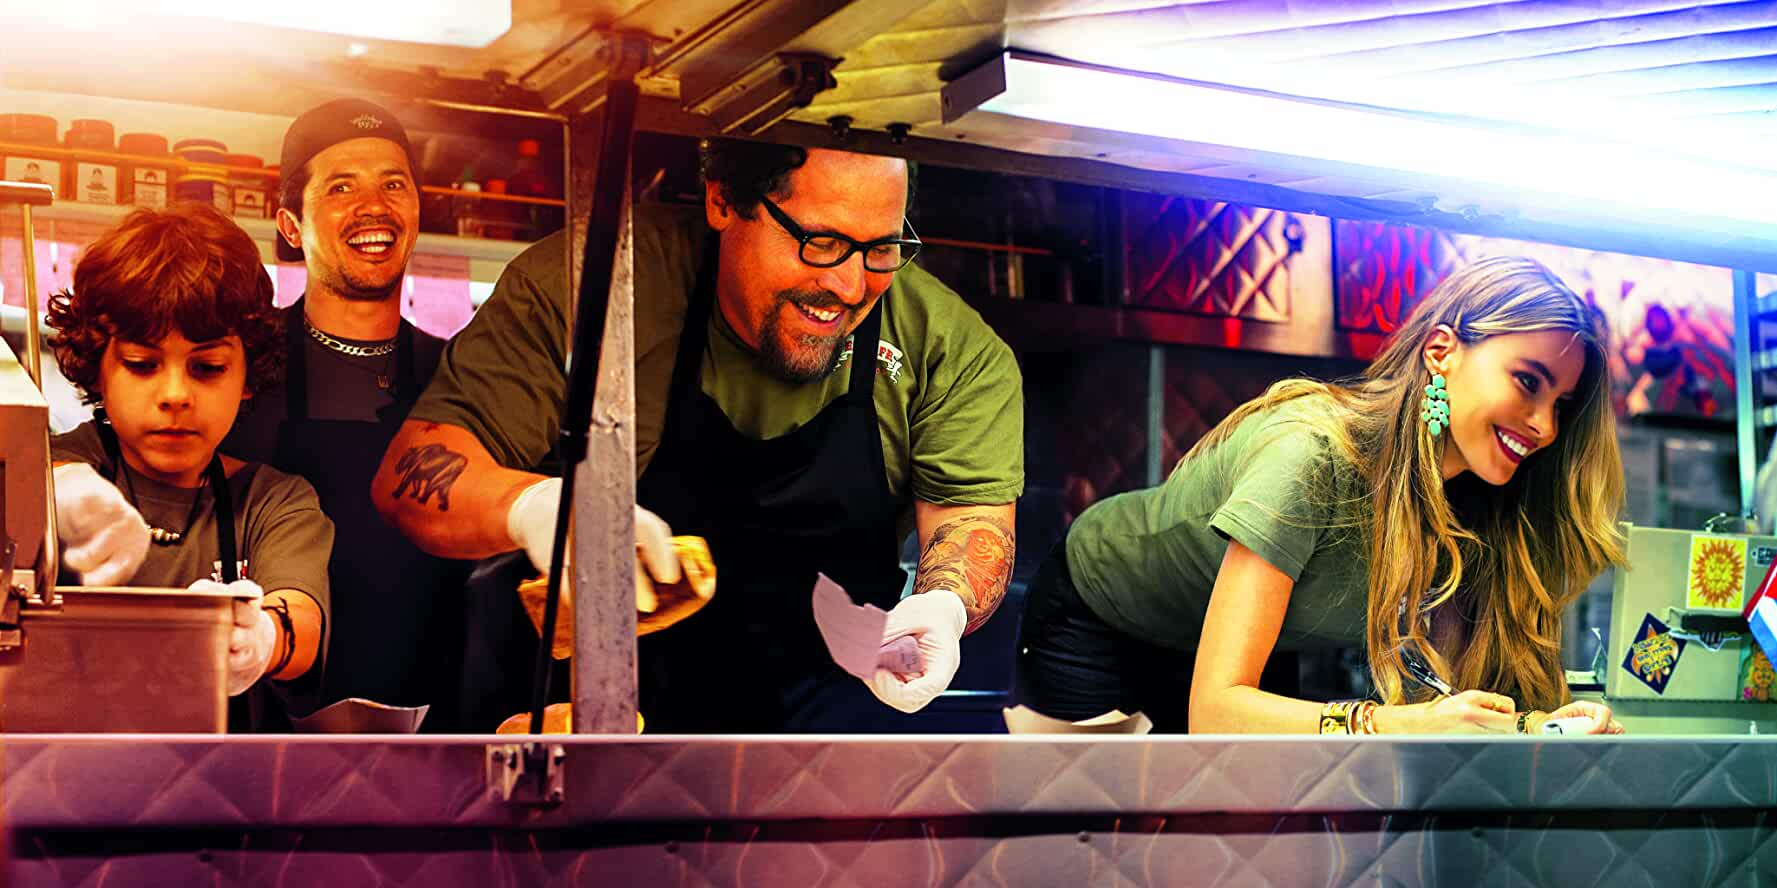 John Leguizamo, Sofía Vergara, Jon Favreau, and Emjay Anthony in Chef (2014)